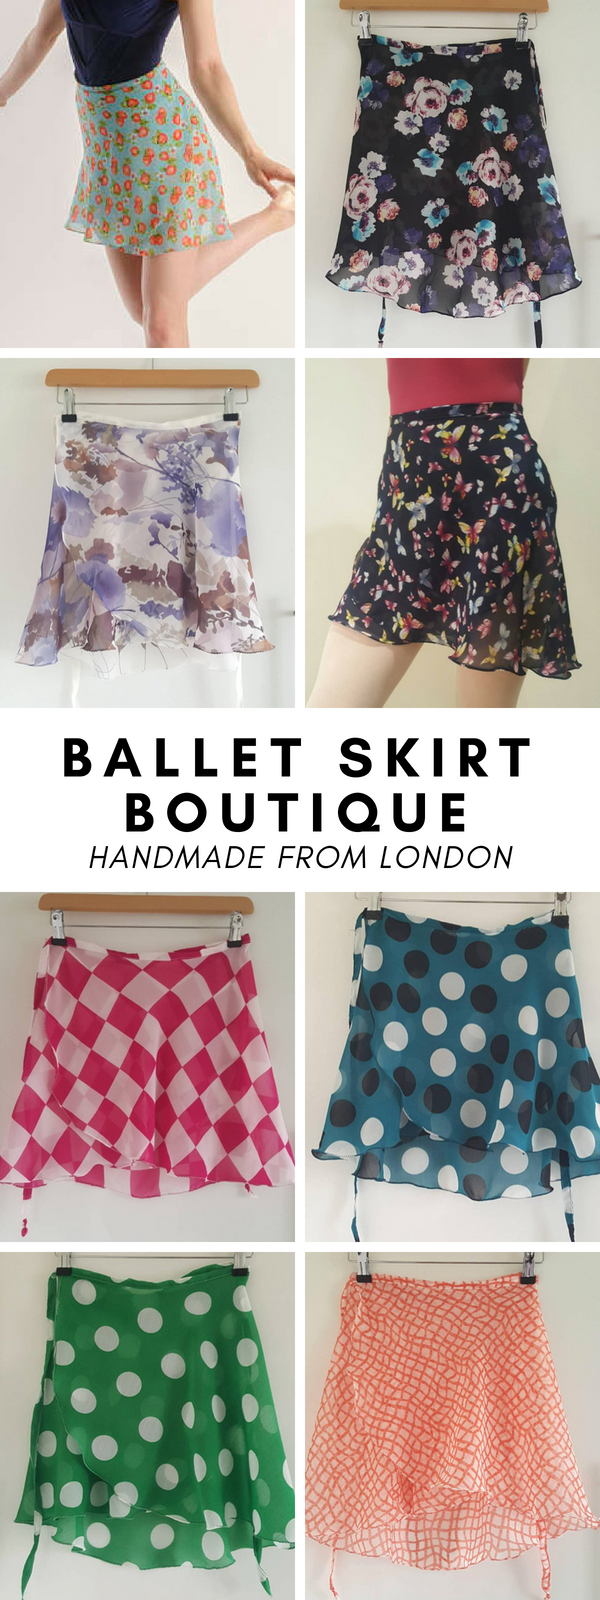 Ballet Skirt Boutique